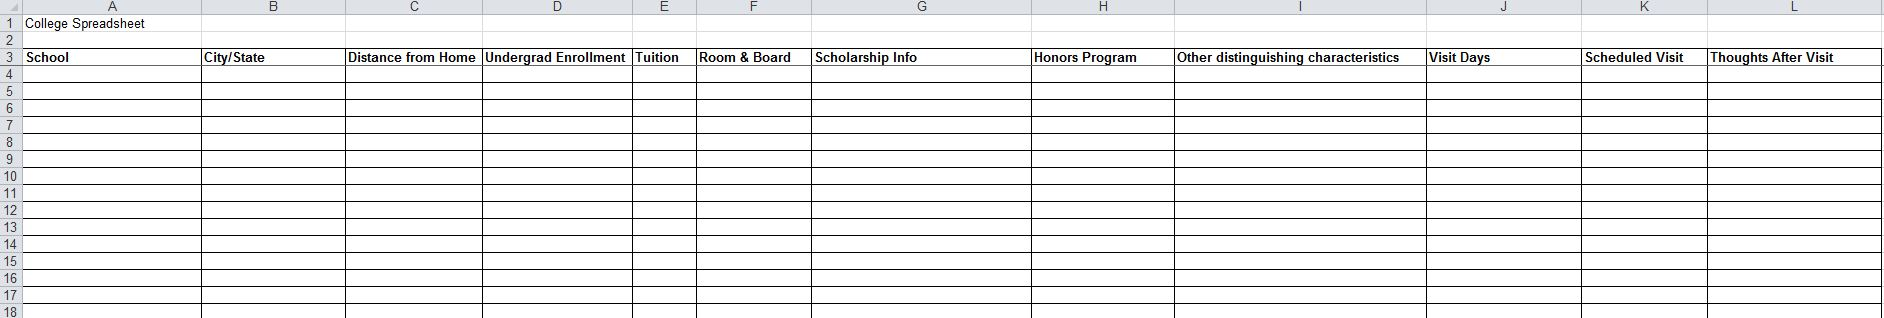 Image of the college search spreadsheet